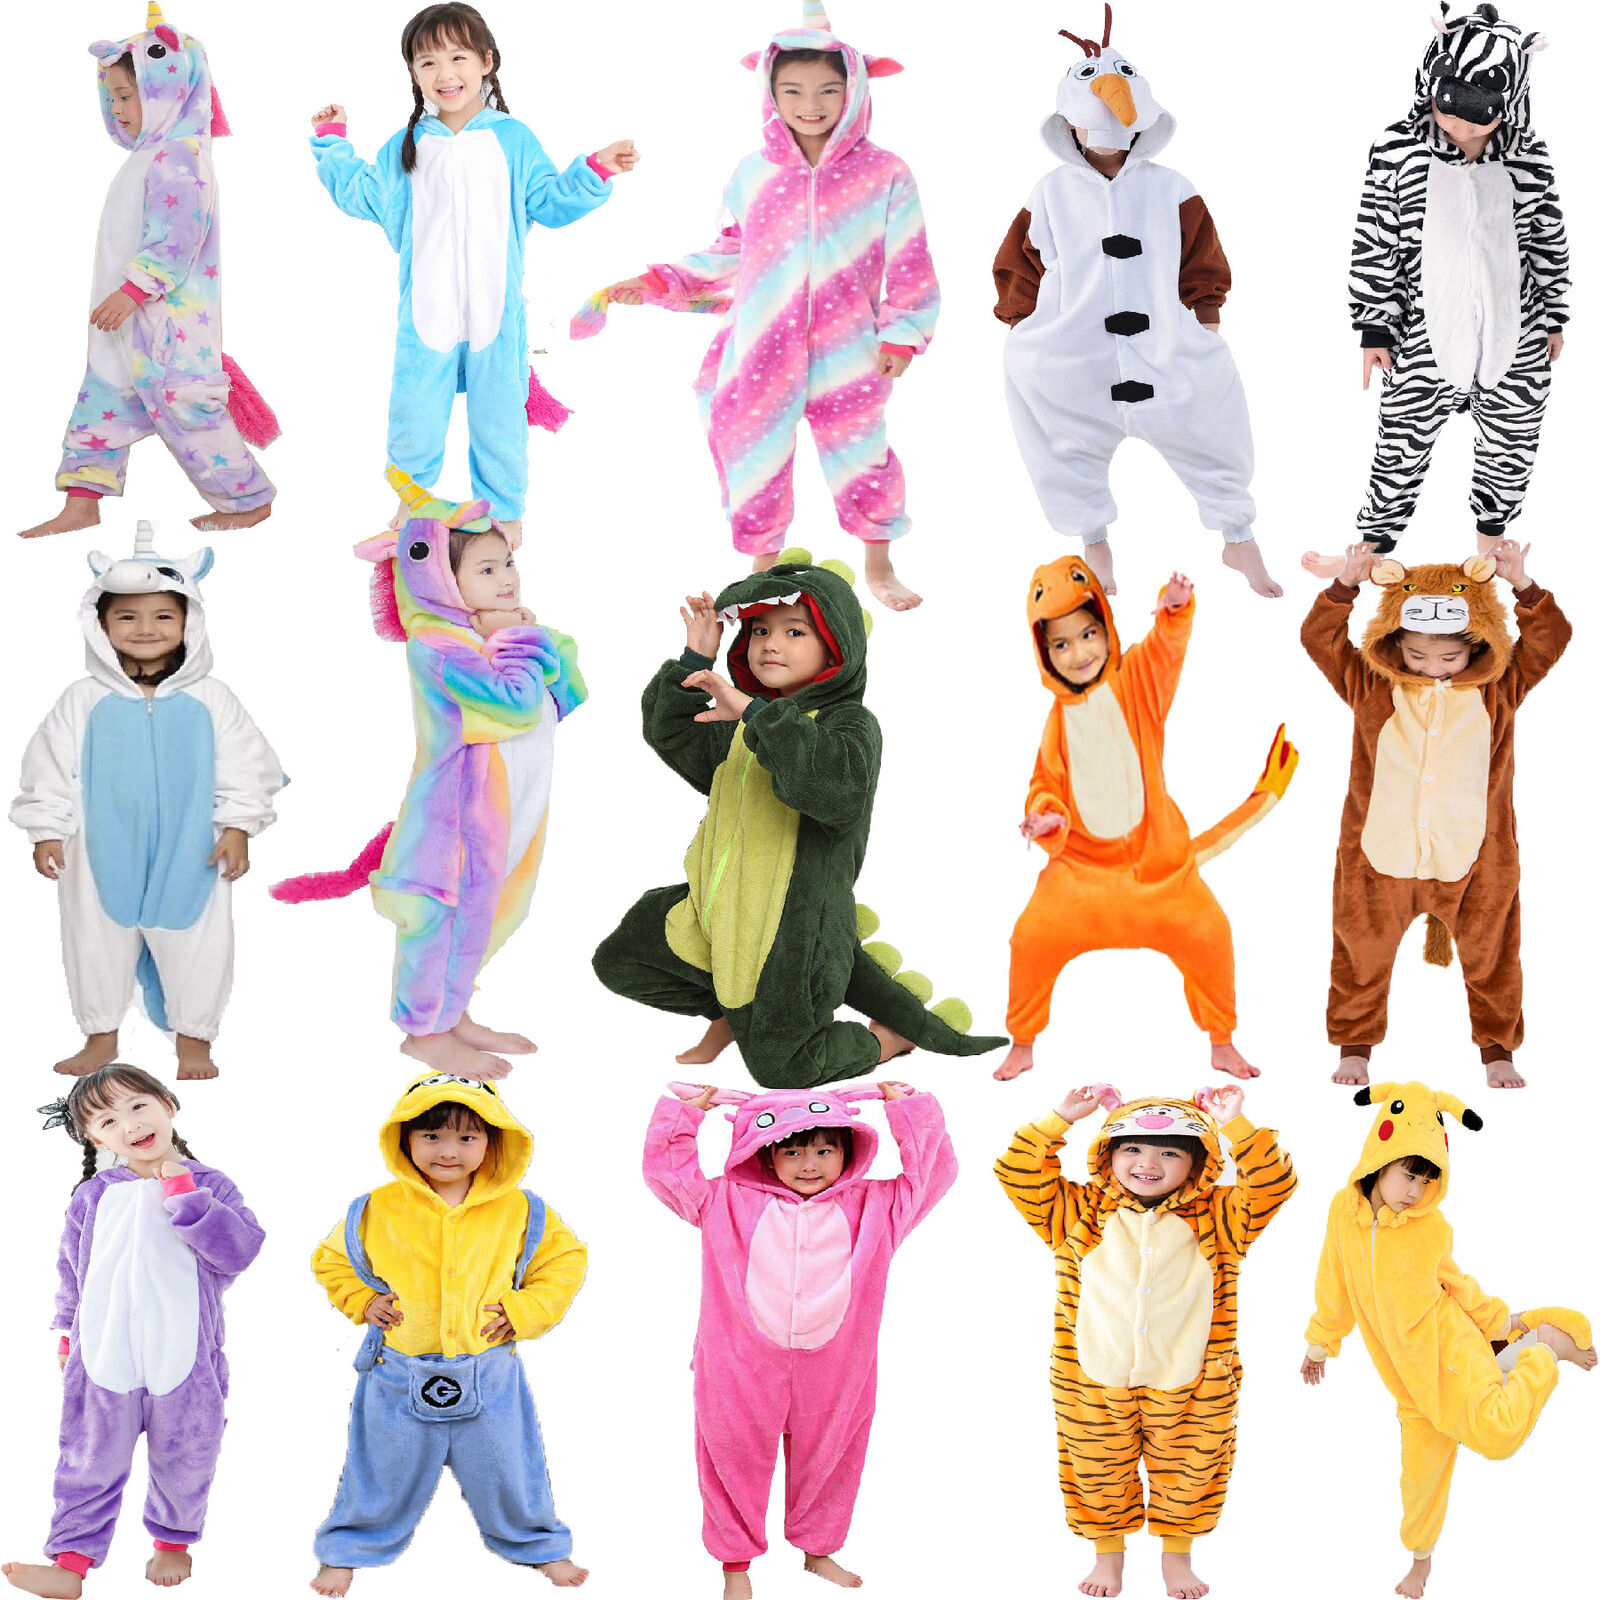 Onesie00 Pokemon Pikachu Pajamas Party Oufits Kigurumi Sleepwear Fancy Dress UK